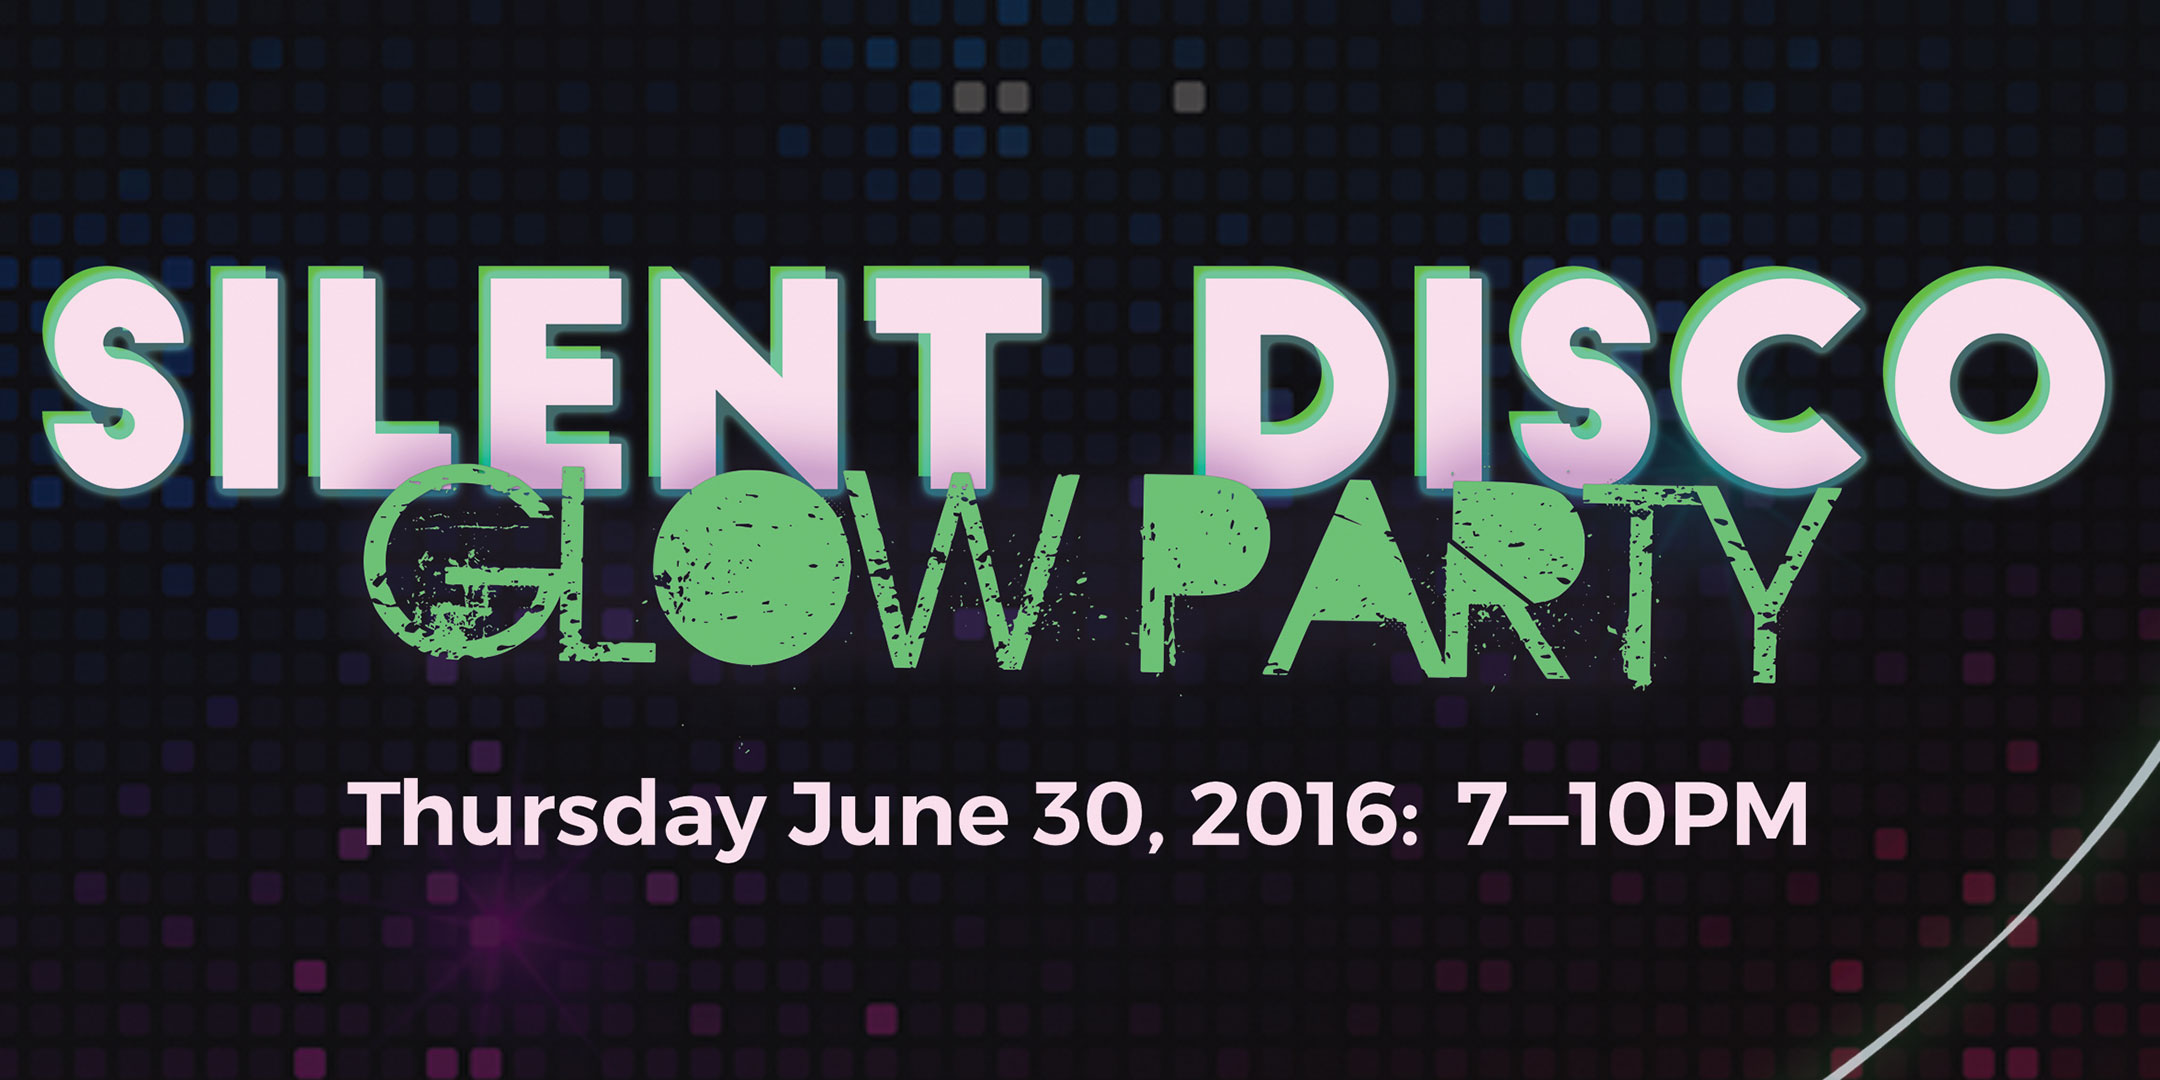 Silent Disco Glow Party @ Sherman Oaks Galleria